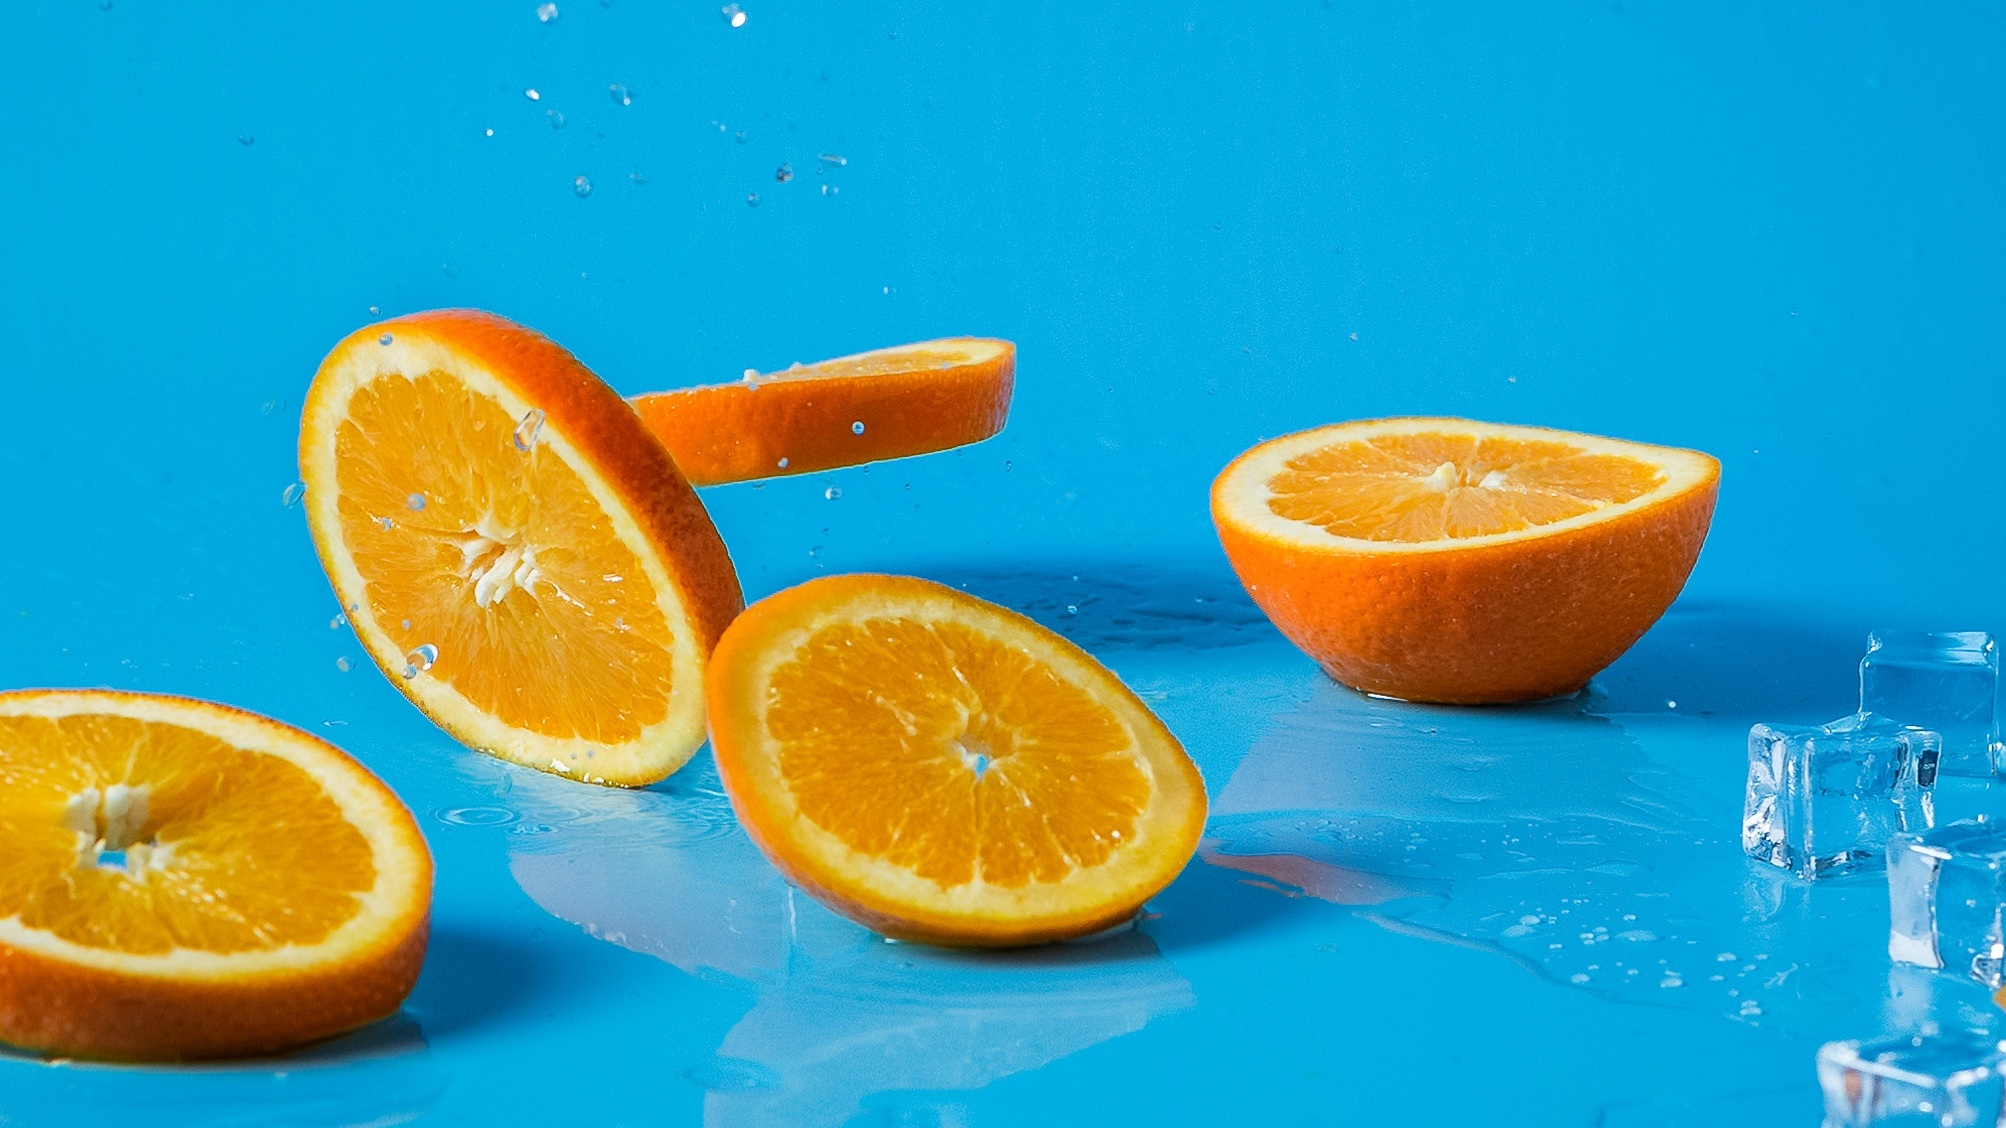 There are roughly 60 calories in an orange. You'd have to eat about 58 oranges to gain a pound. When was the last time you ate 58 oranges? Photo Credit: Mae Mue